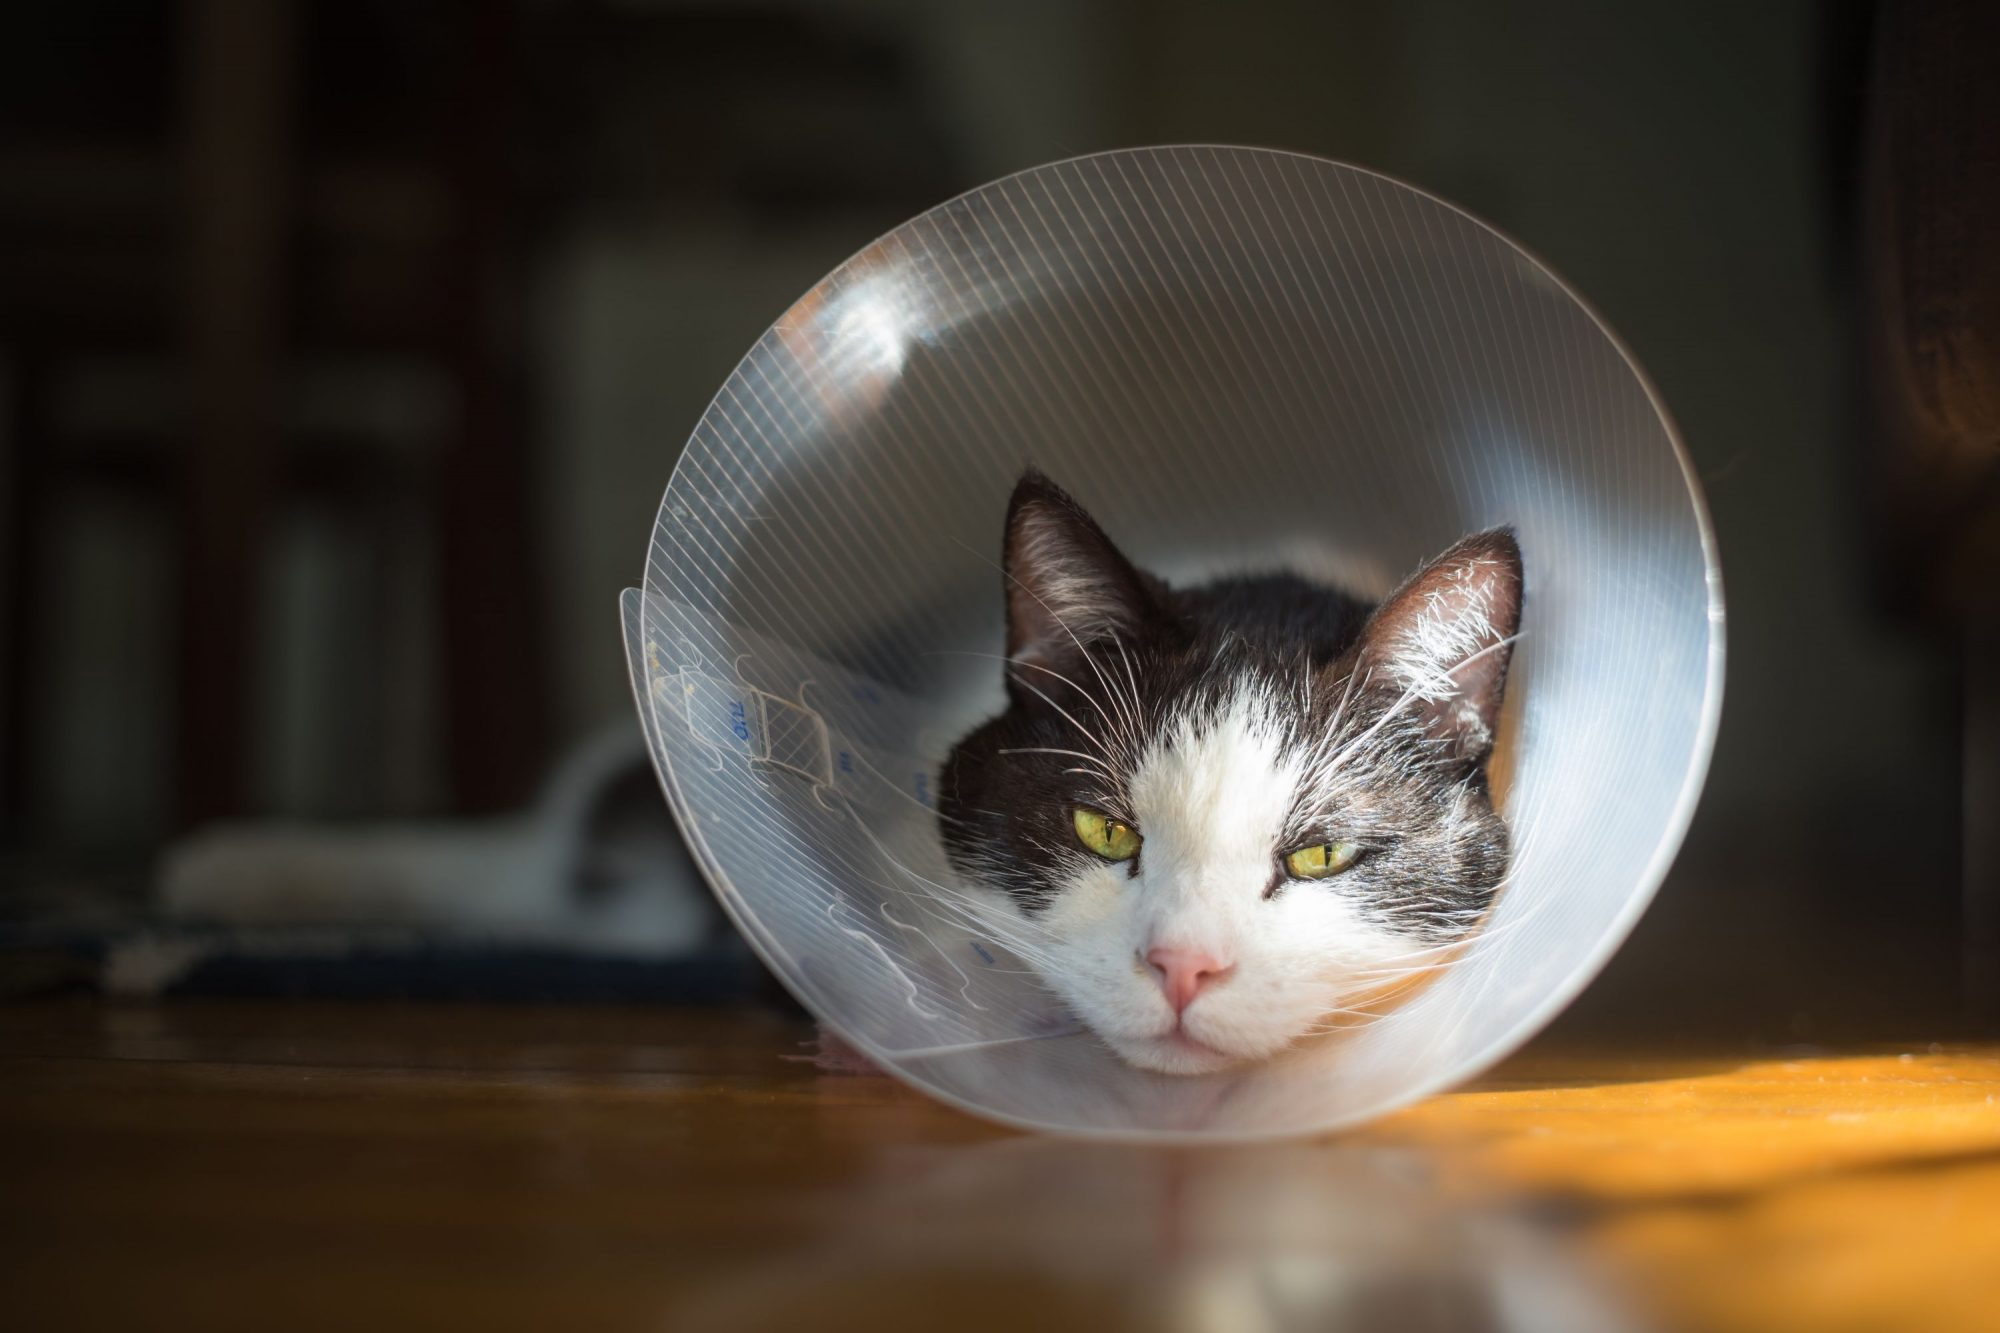 A cat recovers after surgery.